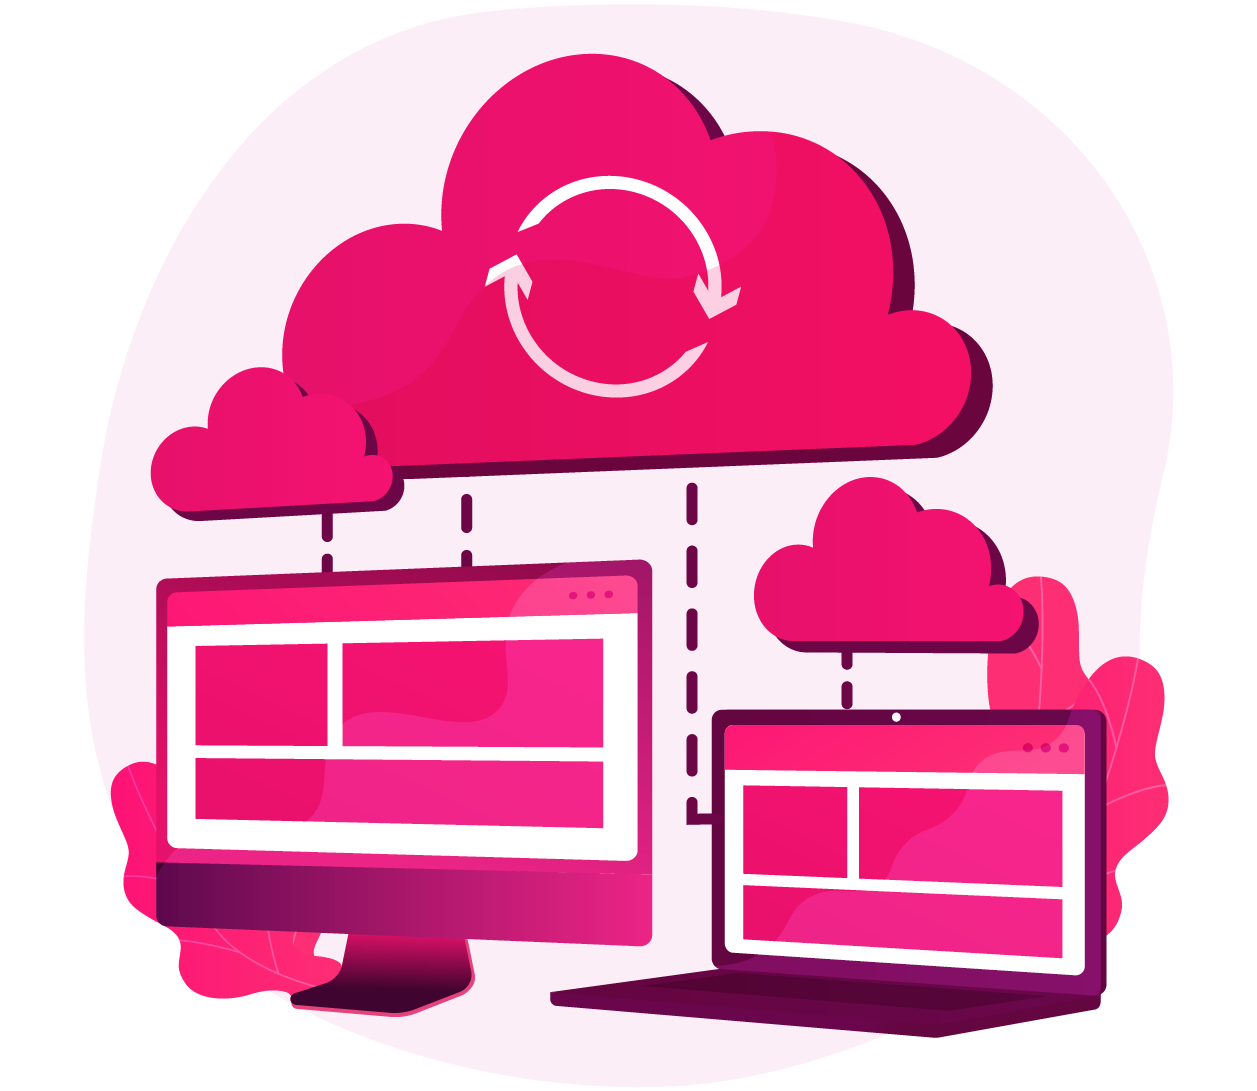 Cloud services for small businesses